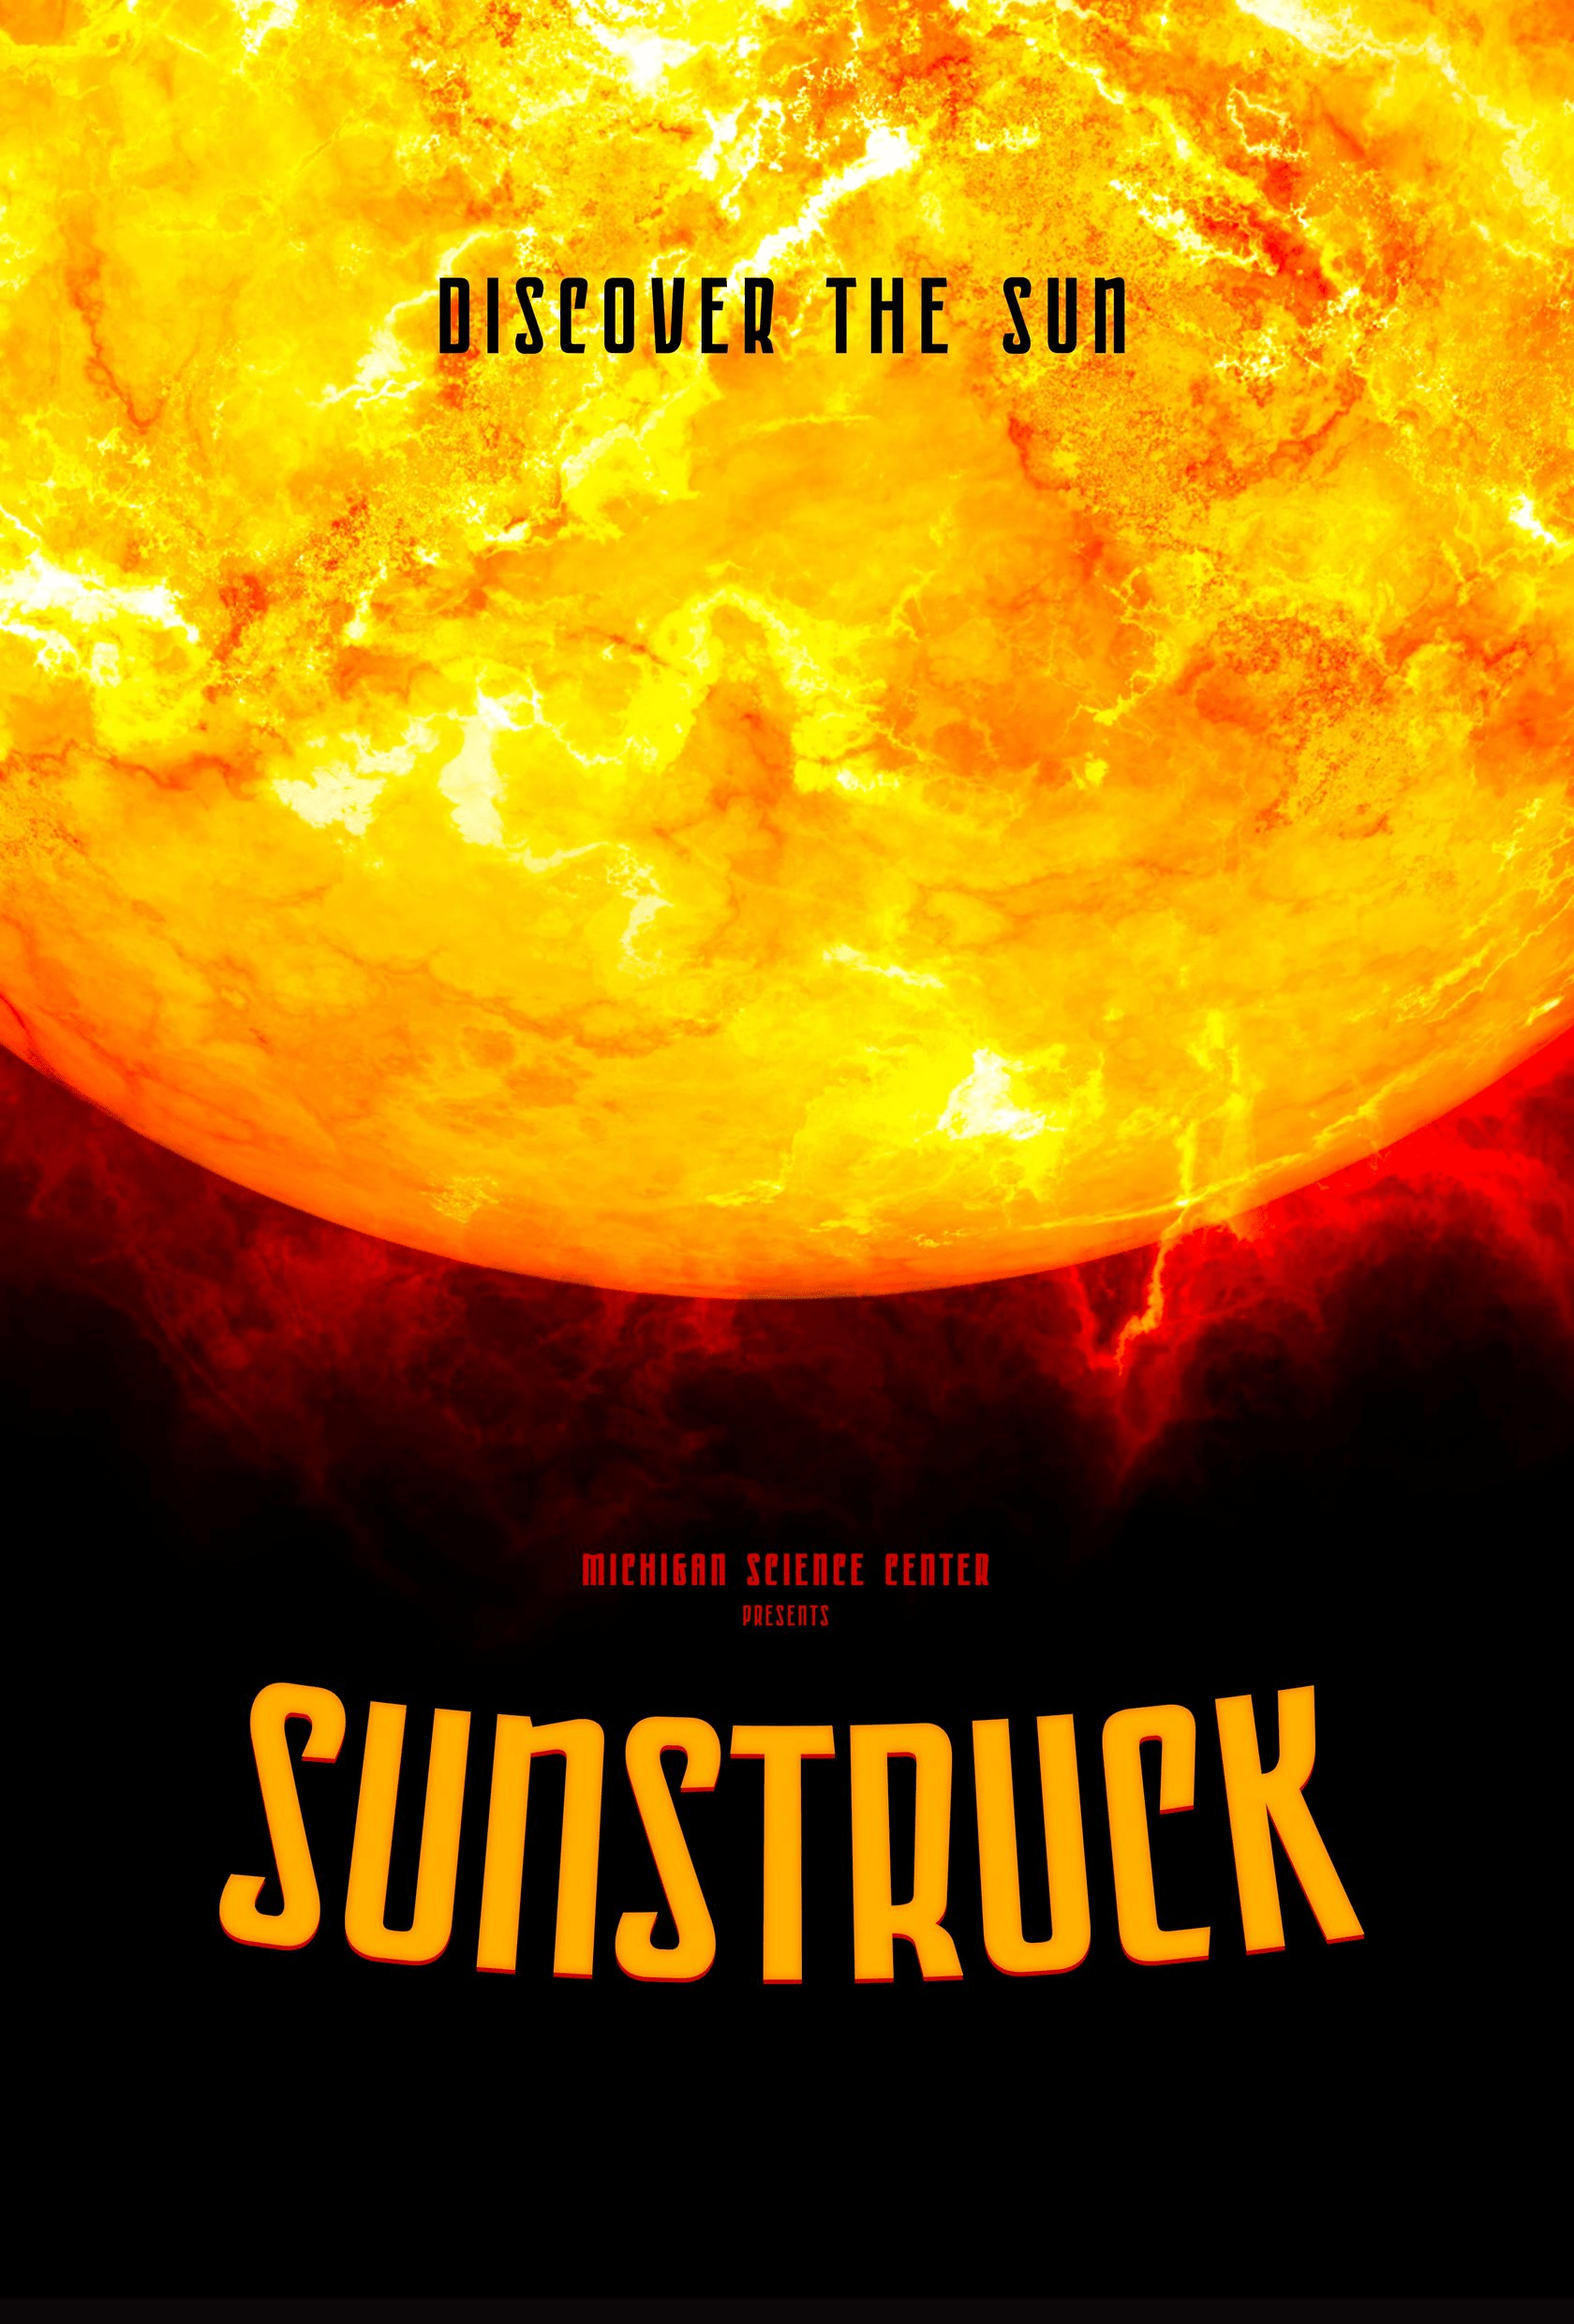 sunstruck image - About the Shows